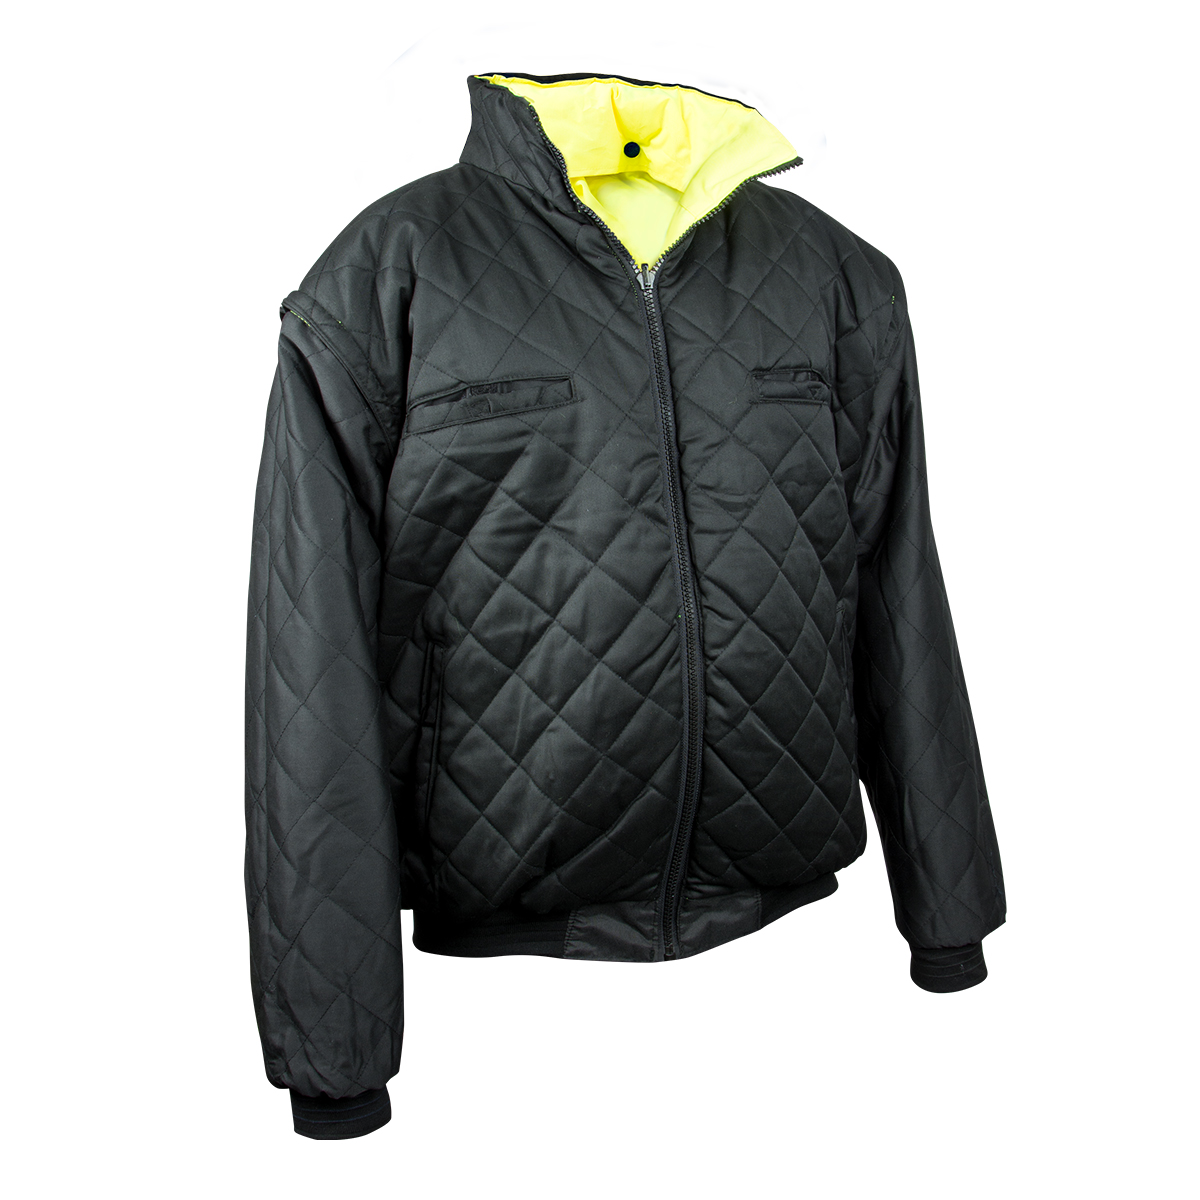 High Visibility Class 3 Water Repellent and Reversible Bomber Jacket